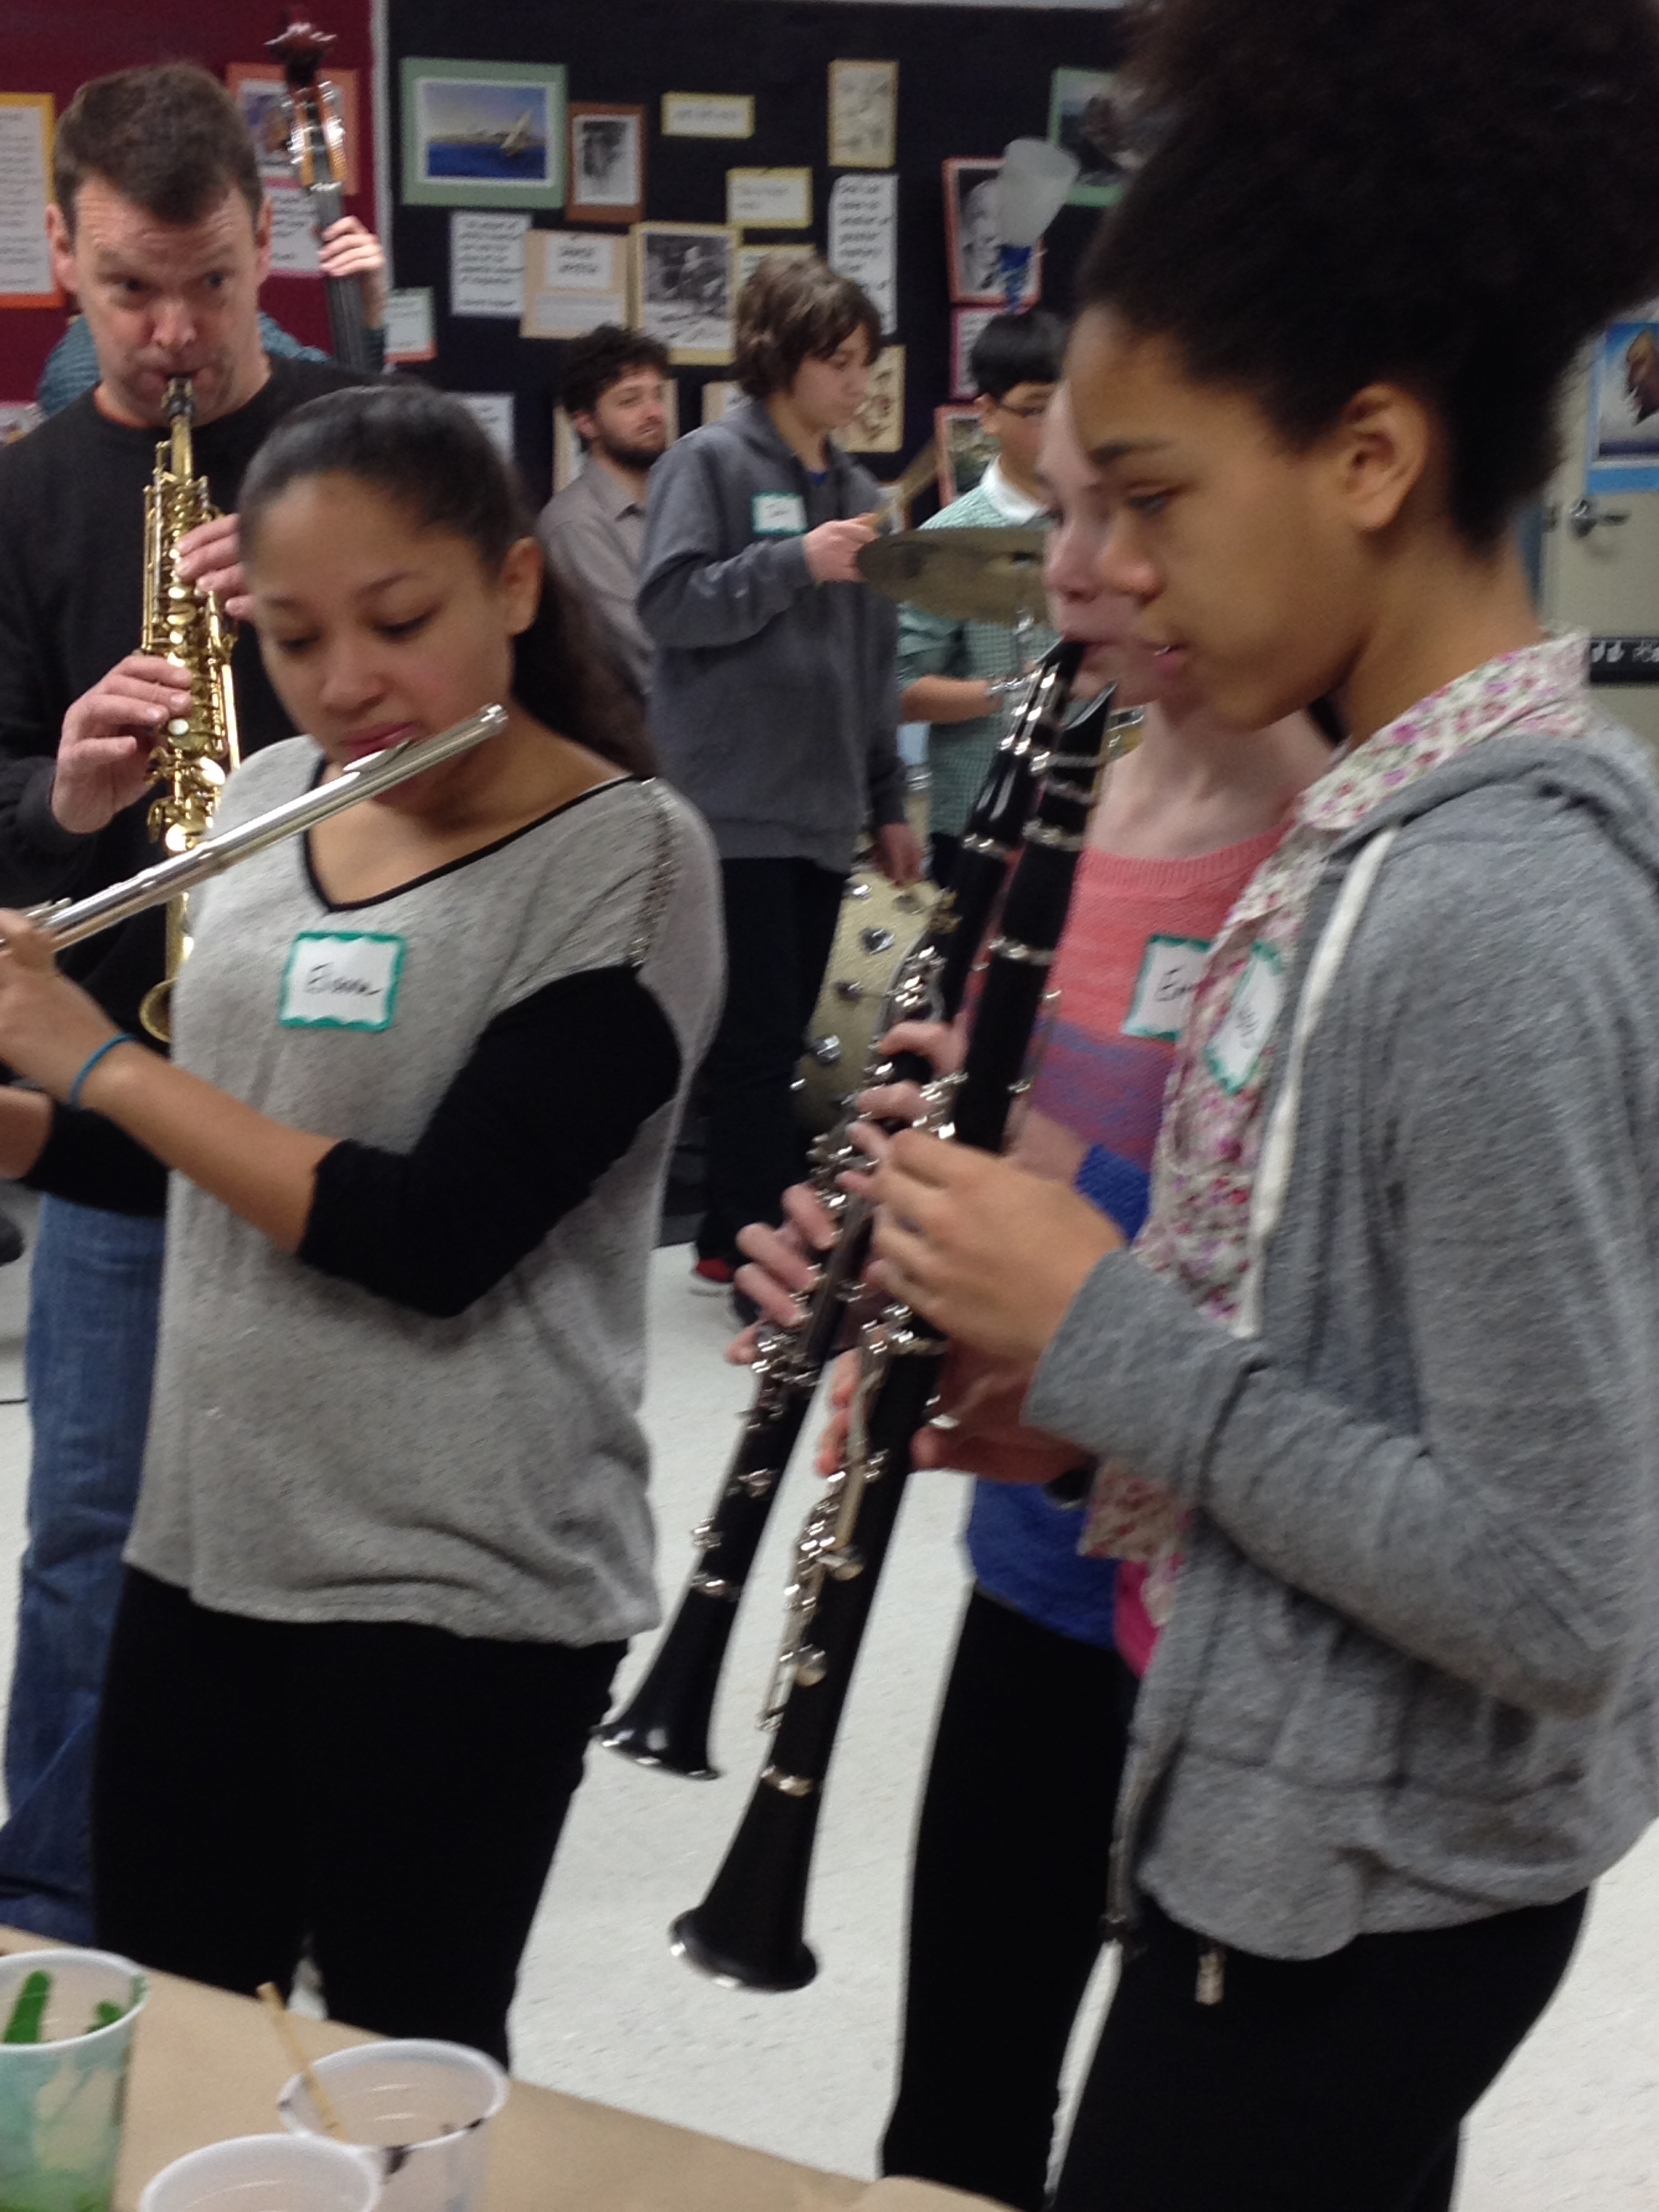 Woodwinds jam with the visual jazz painters as Matt Langley leads on his Soprano Saxophone in the background